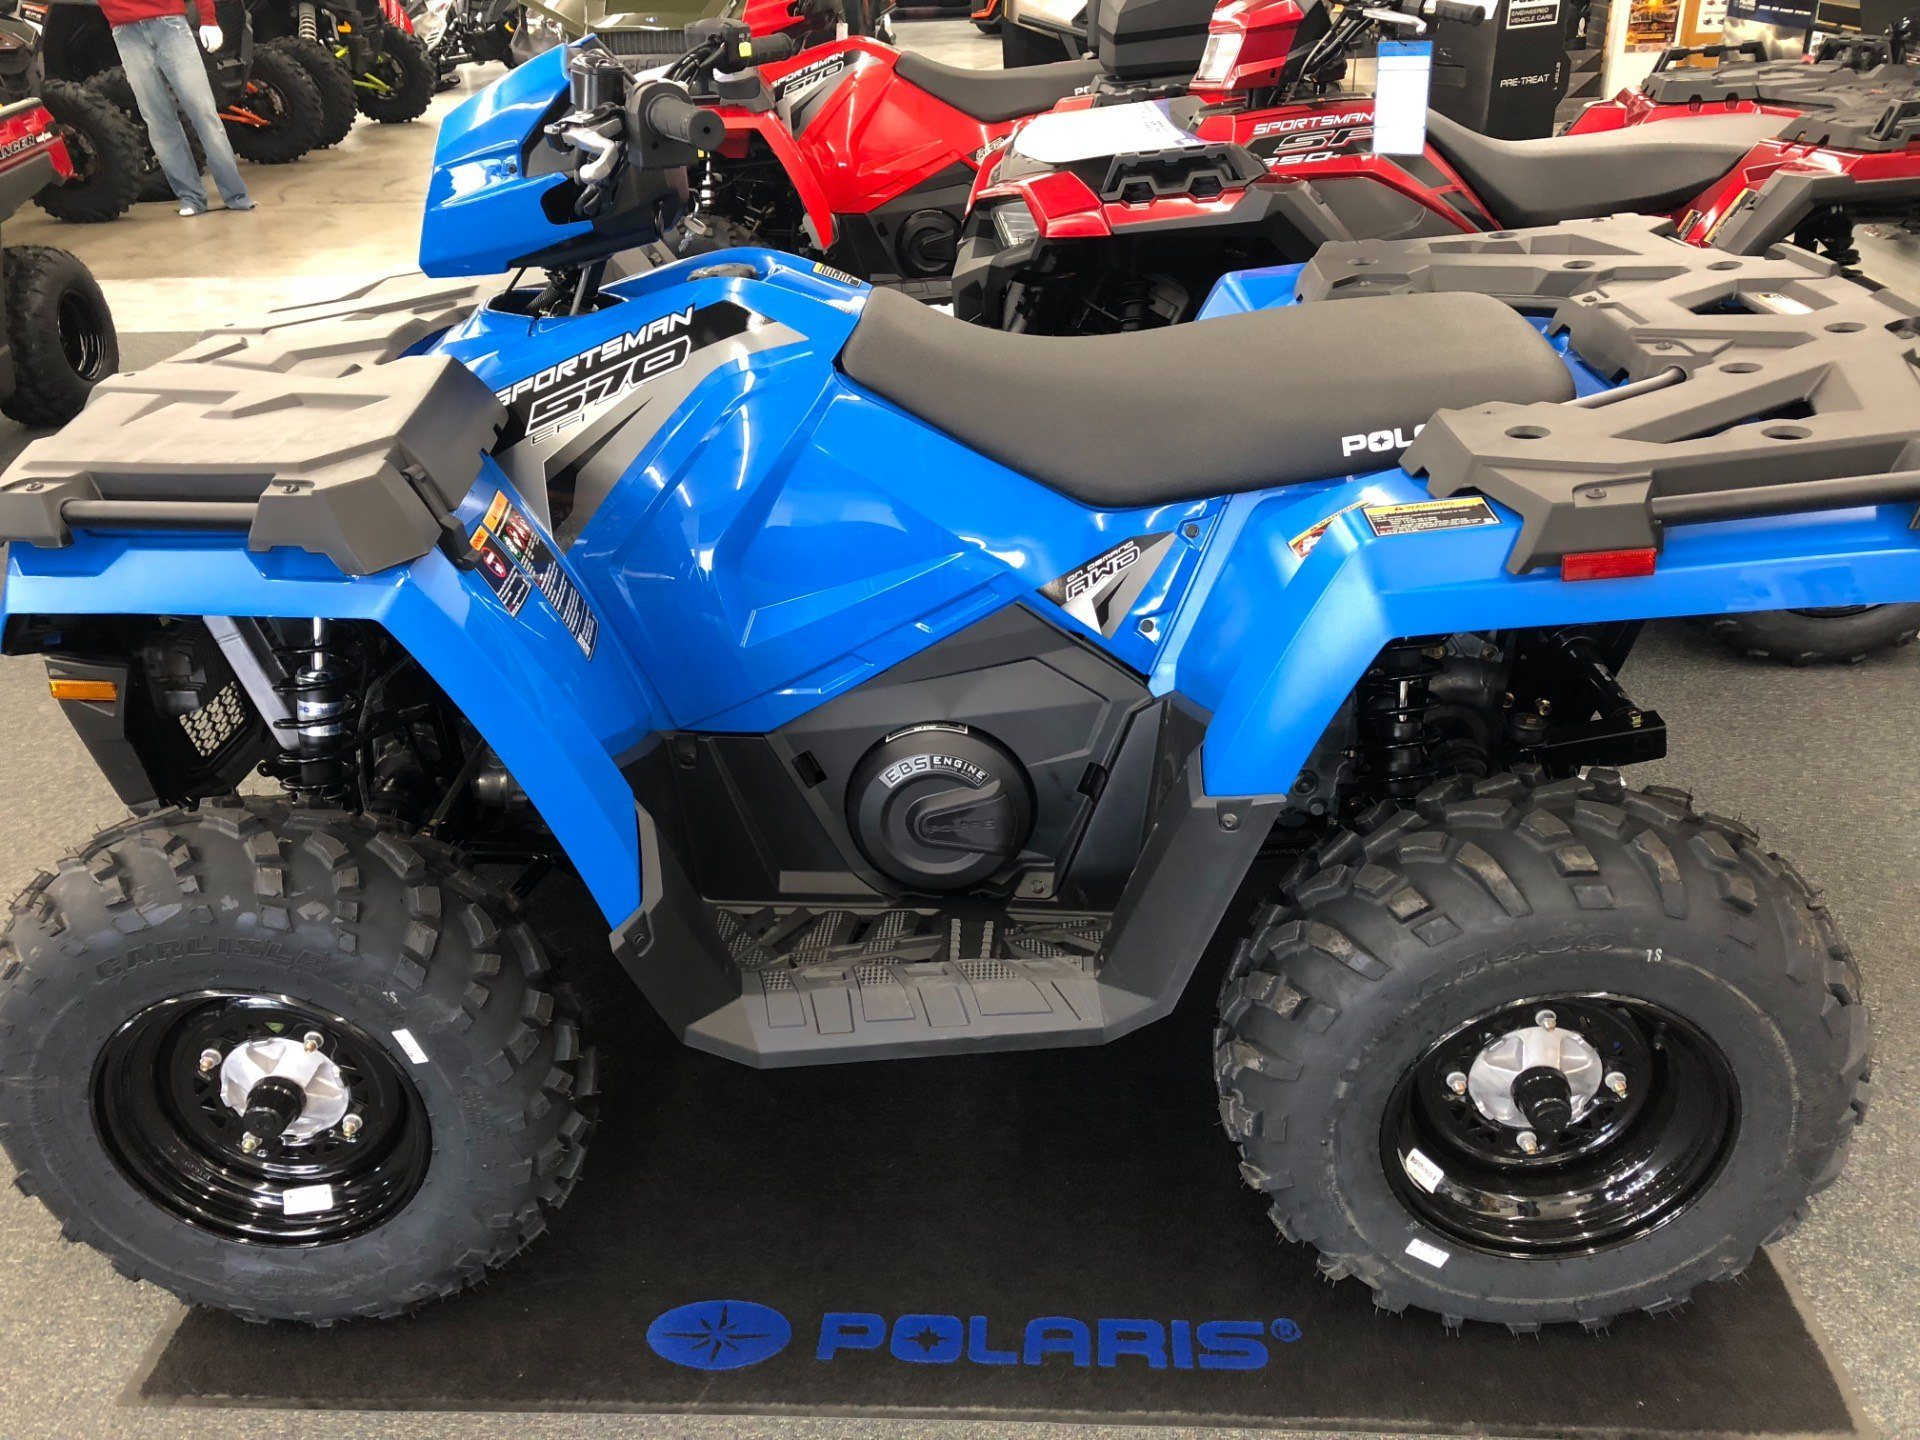 new 2019 polaris sportsman 570 eps atvs in altoona wi. Black Bedroom Furniture Sets. Home Design Ideas